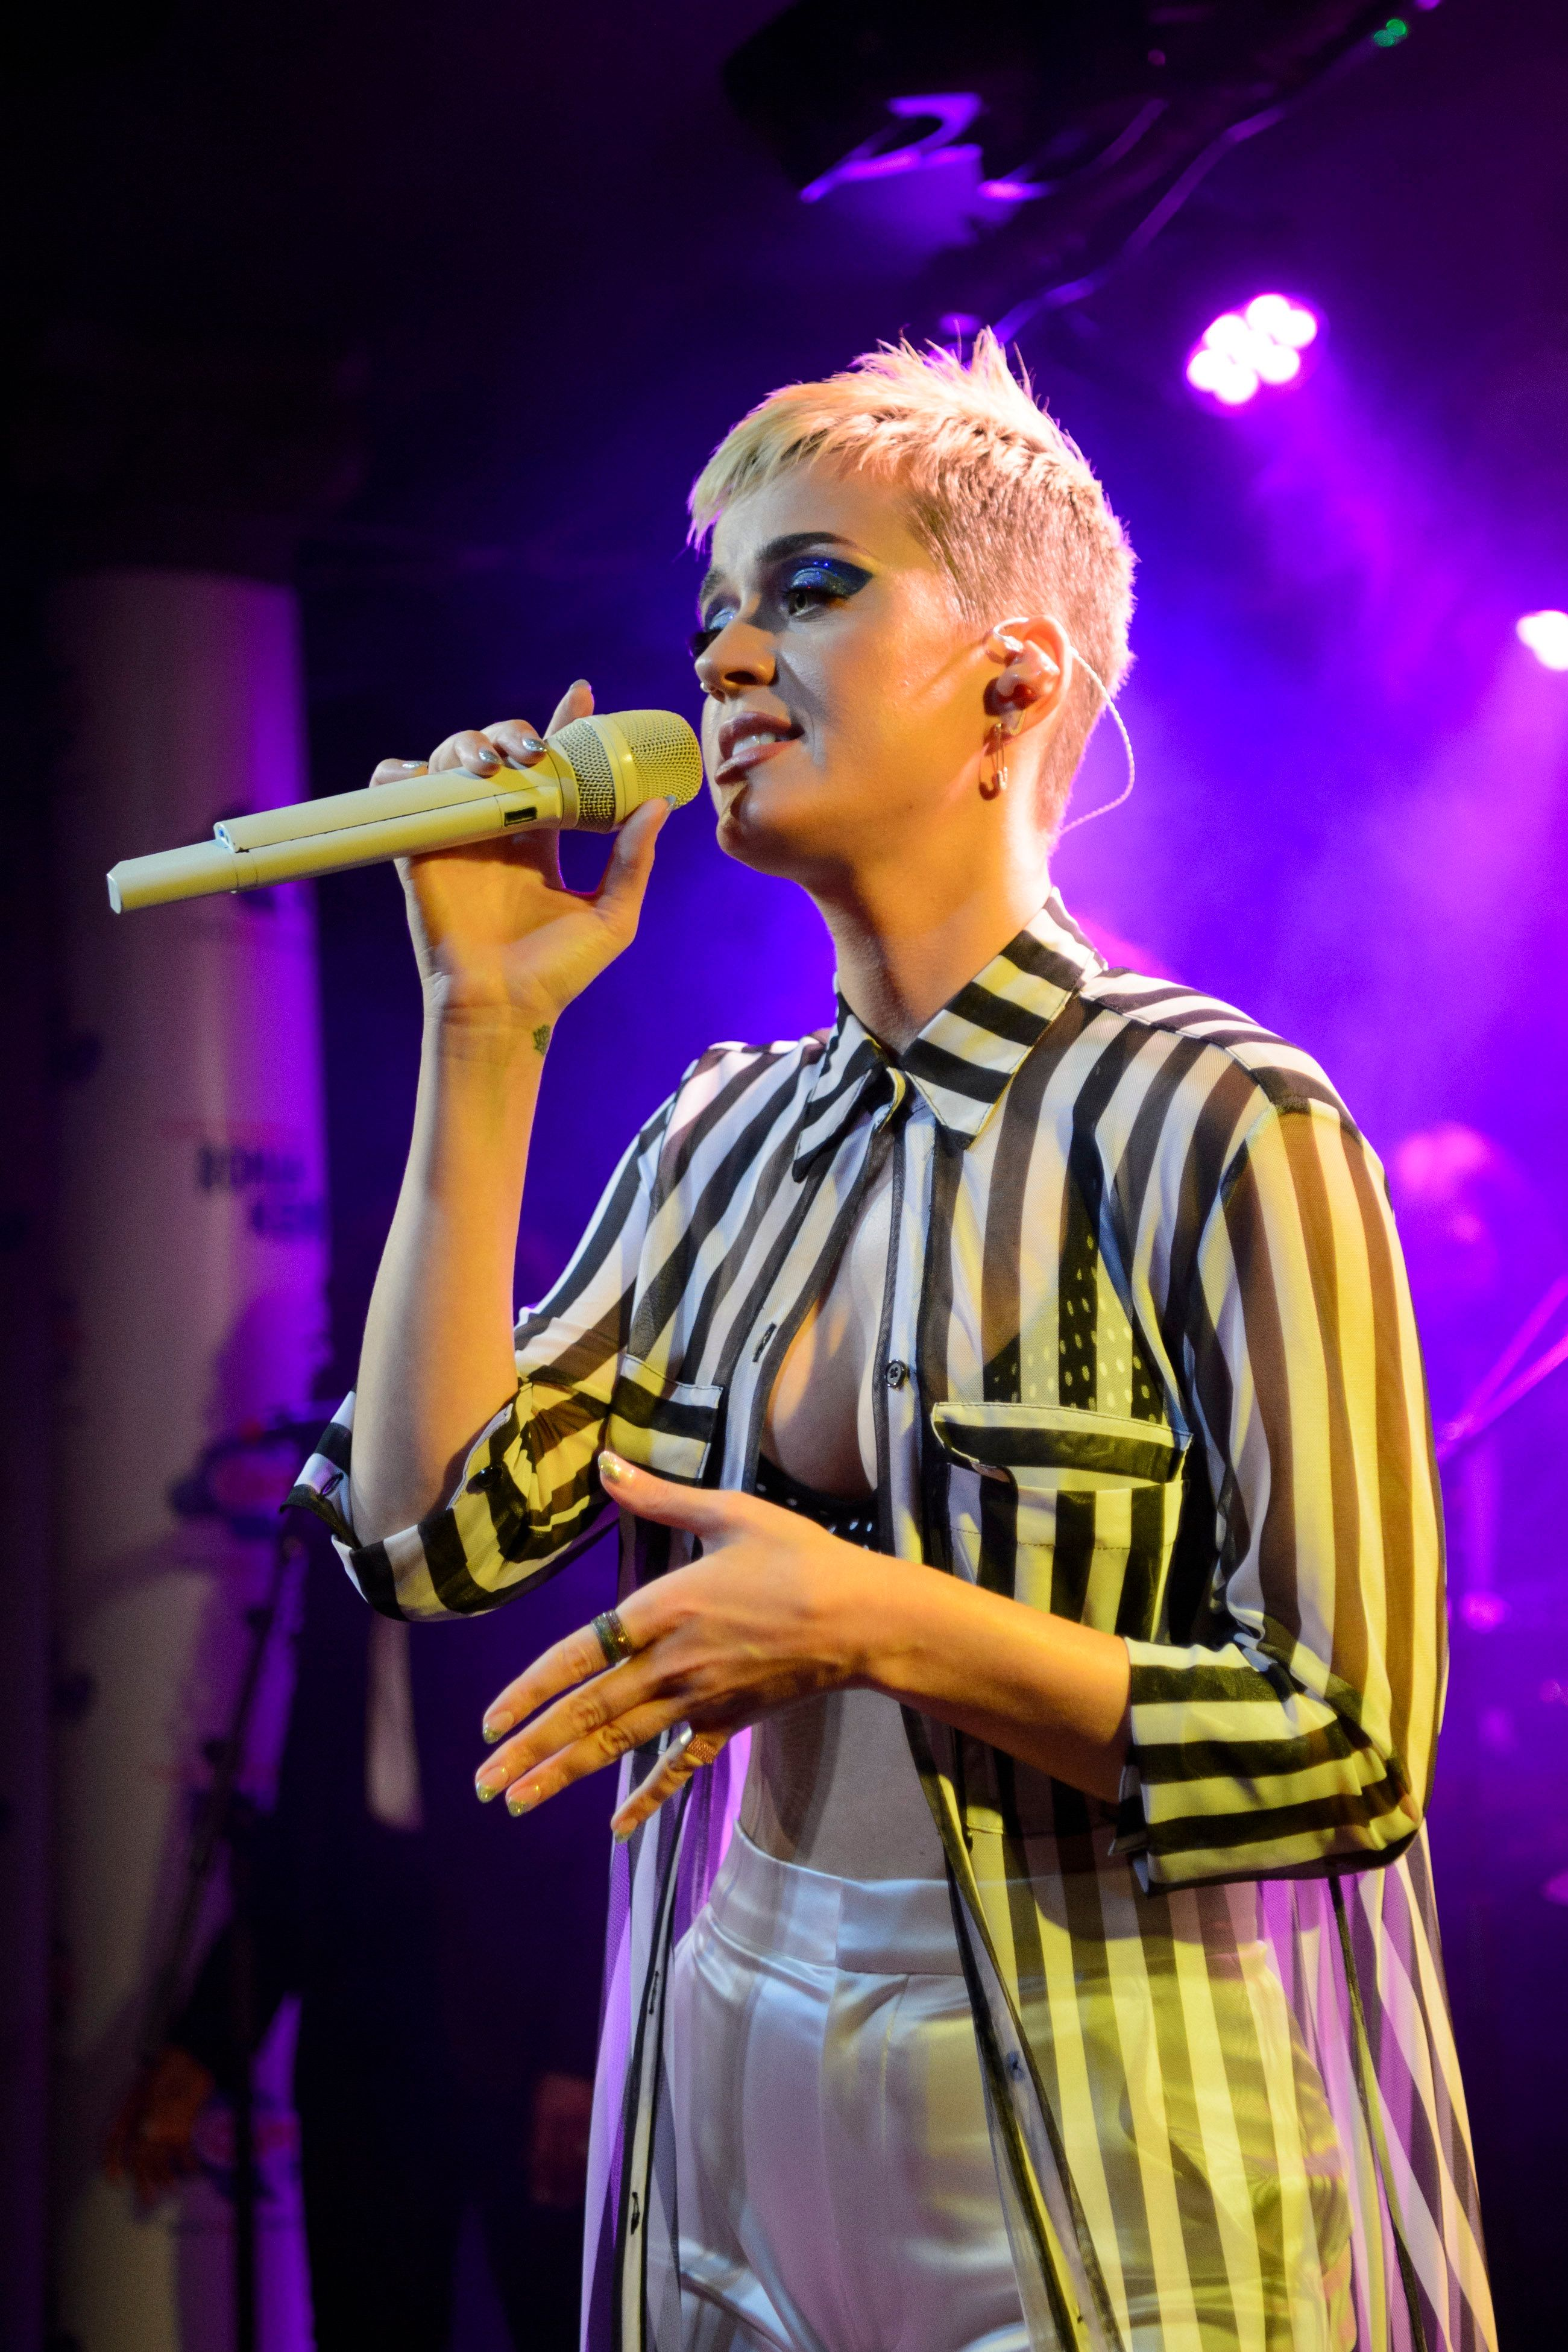 Katy Perry Breaks Down In Tears At London Gig As She Pays Tribute To Manchester Bombing